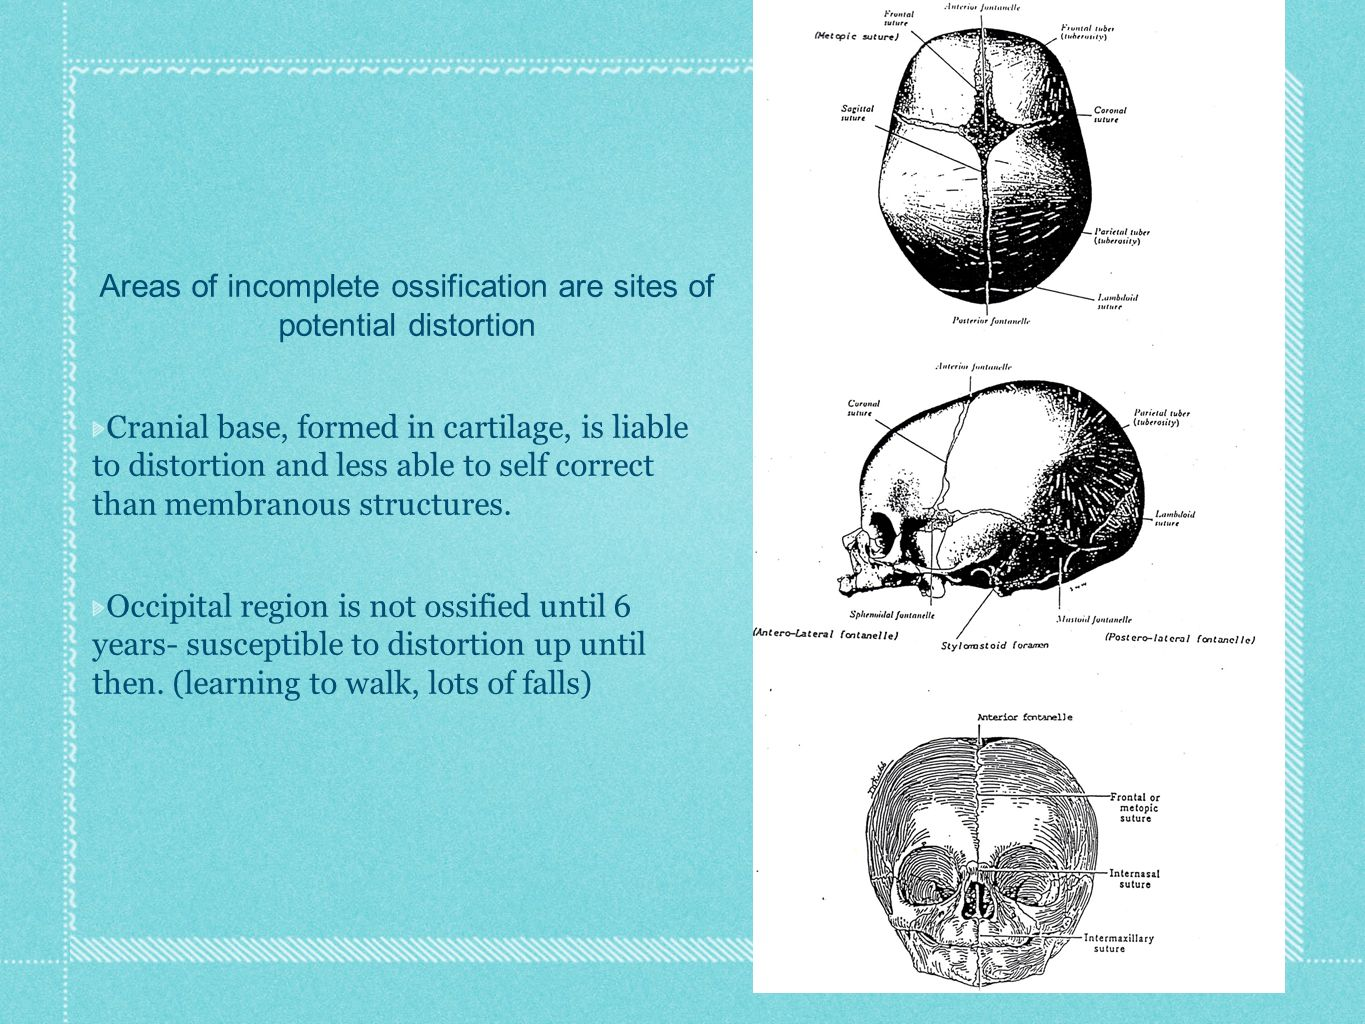 Areas of incomplete ossification are sites of potential distortion Cranial base, formed in cartilage, is liable to distortion and less able to self correct than membranous structures.